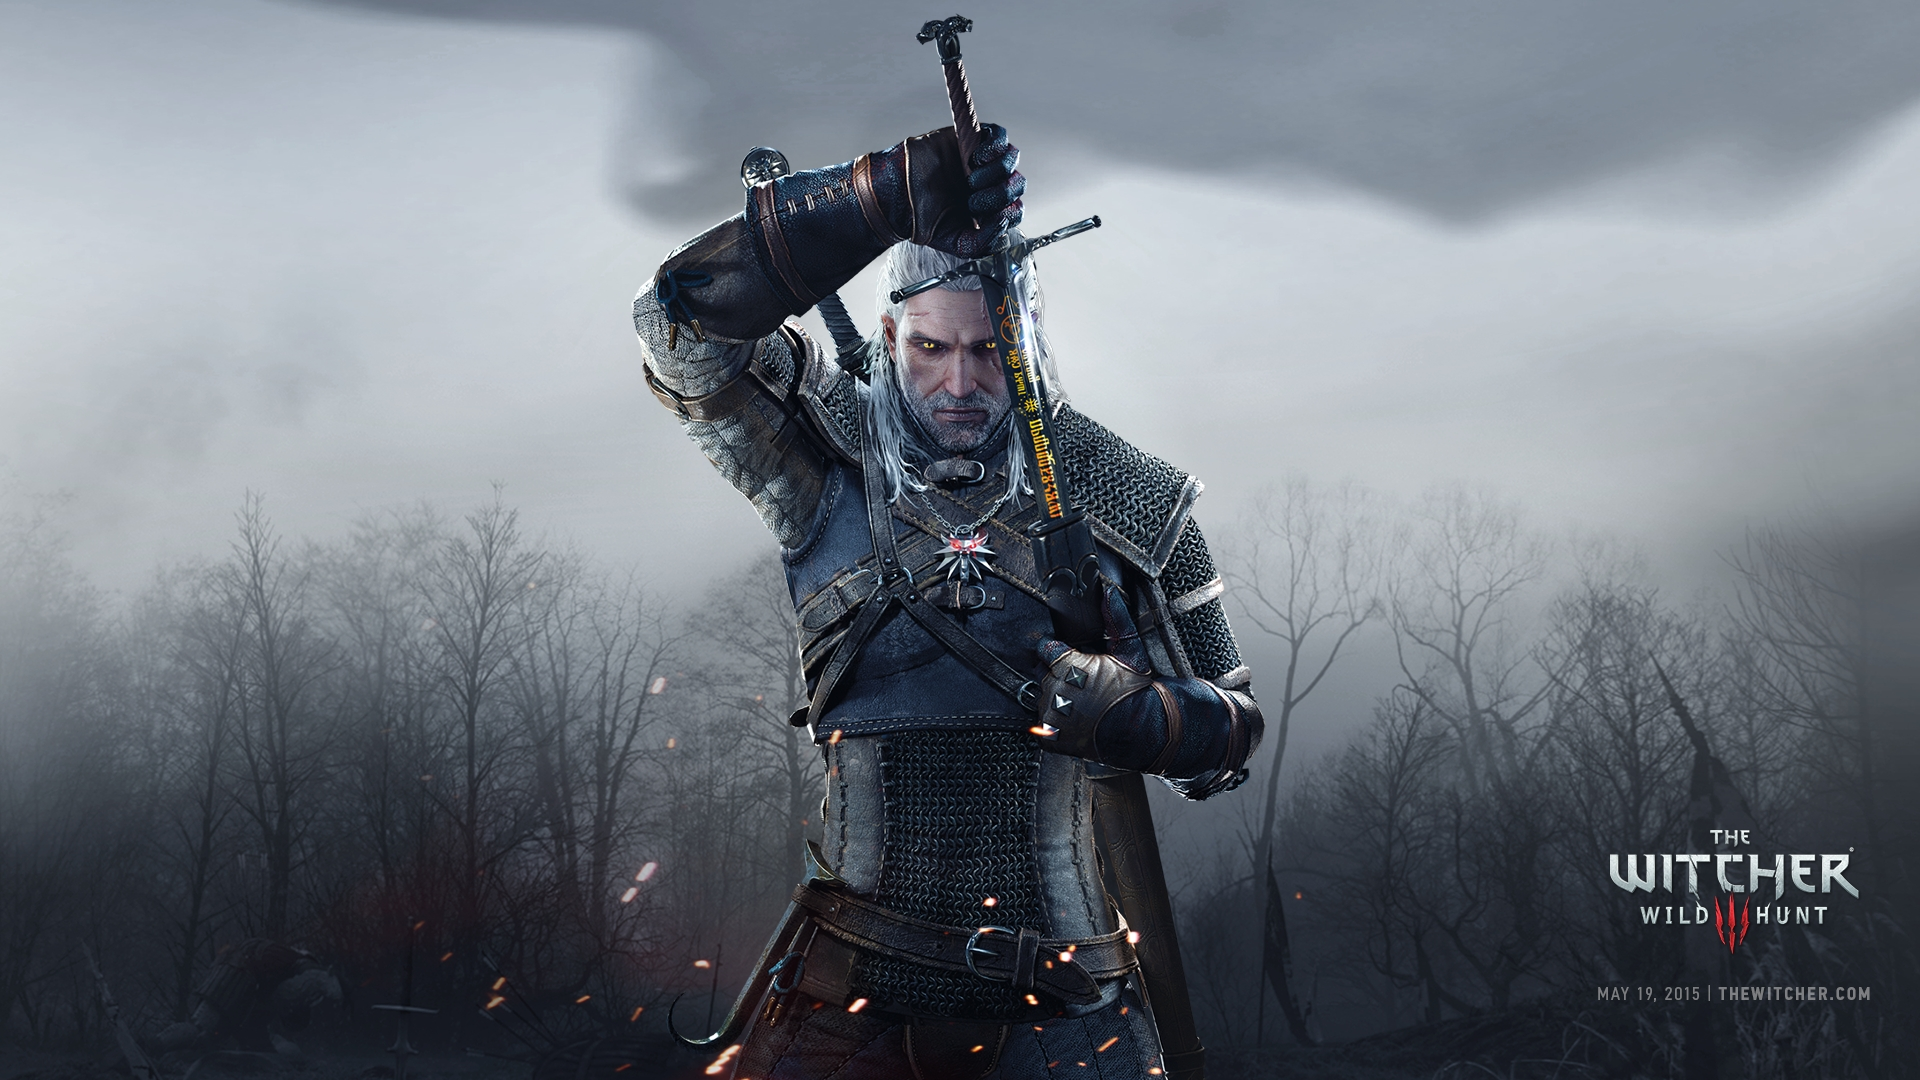 The Witcher 3: Wild Hunt - wallpaper